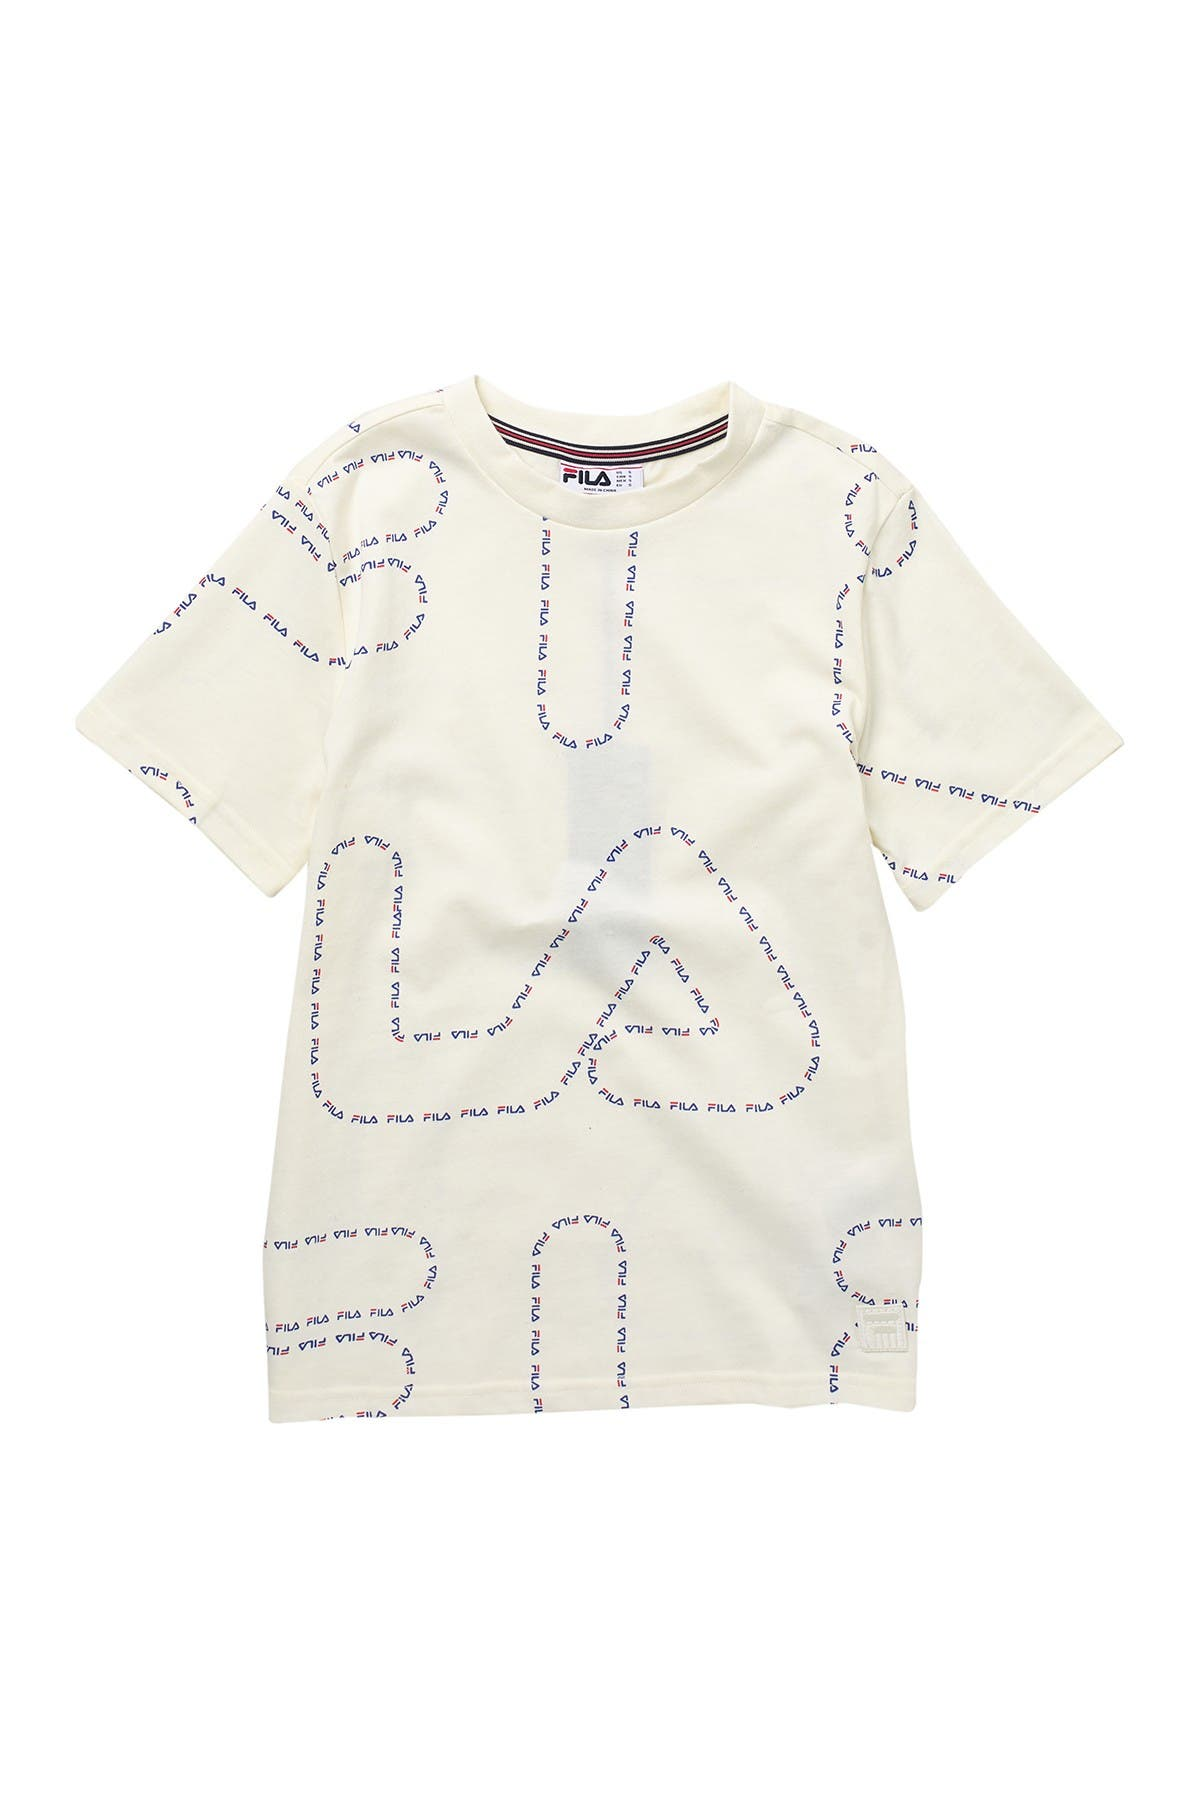 Image of FILA USA Line Allover Print T-Shirt